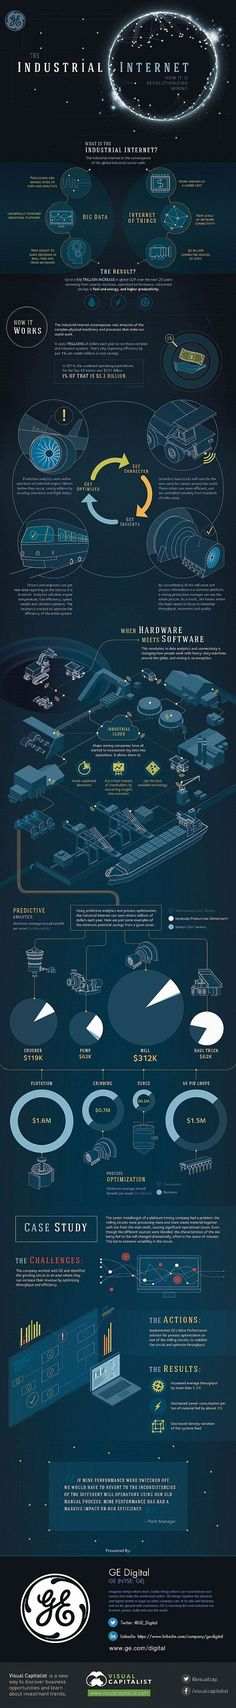 Energy Efficient Home Upgrades in Los Angeles For $0 Down -- Home Improvement Hub -- Via - Interesting infographics about the Industrial Internet = Big Data + The Internet of Things #IoT